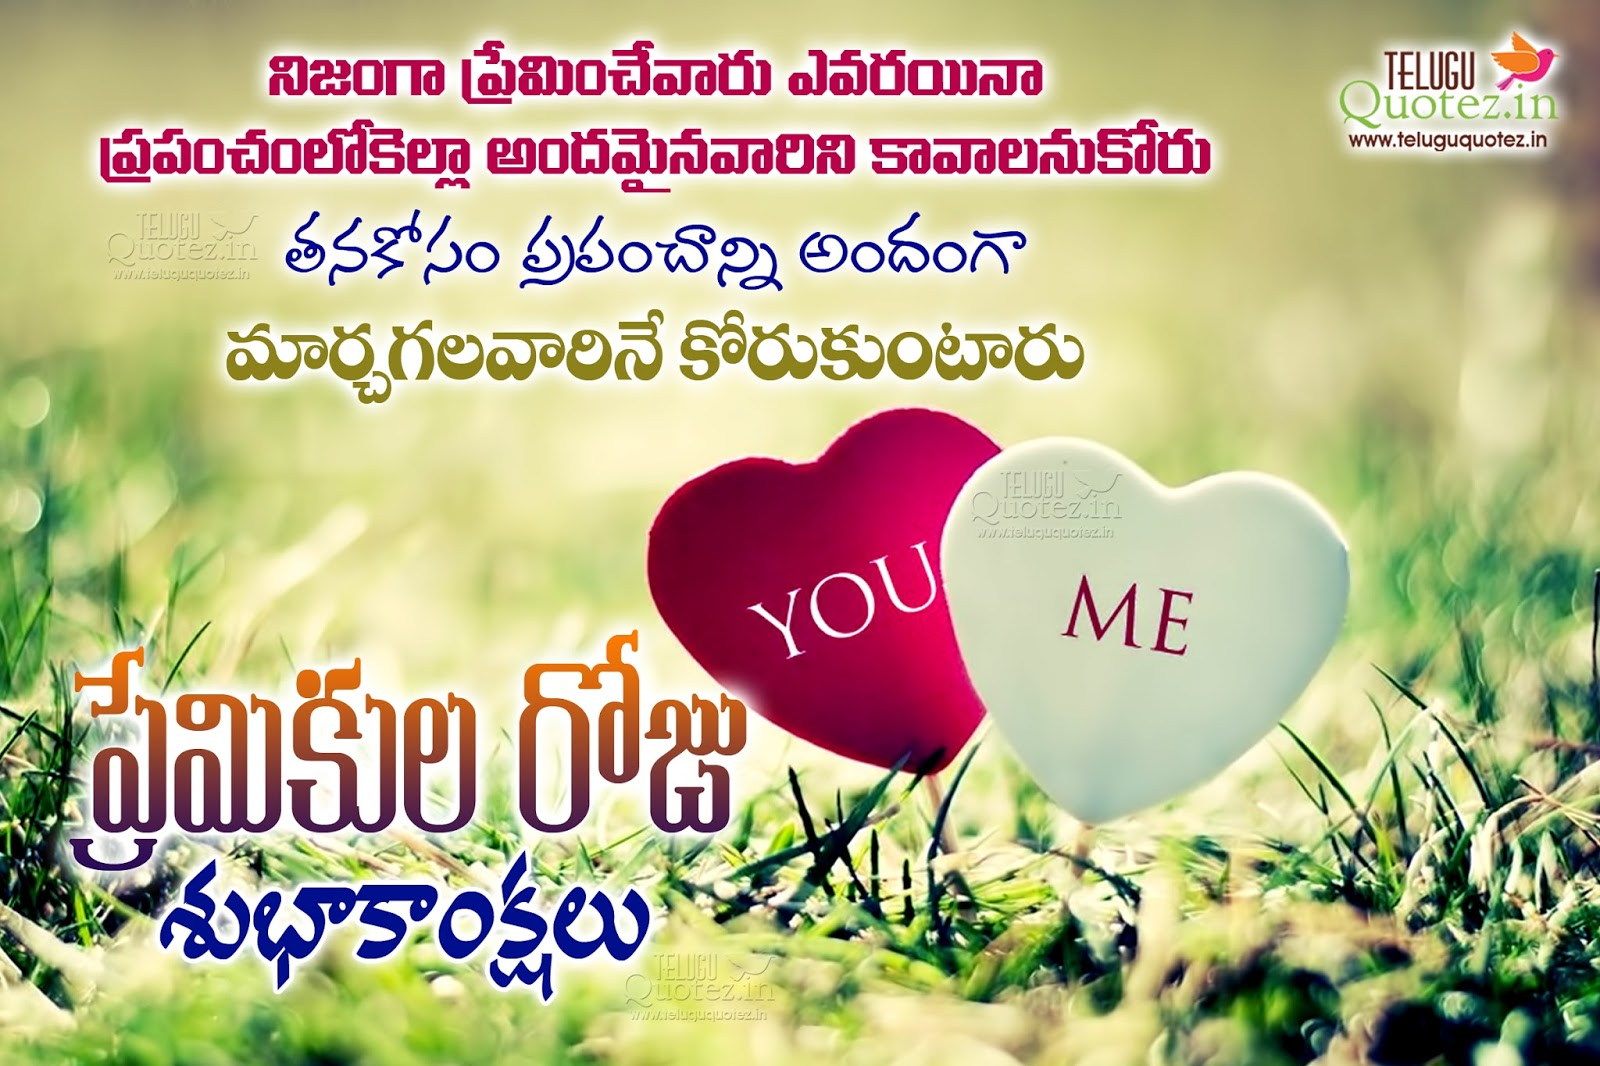 Telugu Valentines Day Quotes And Greetings With Nice Love Images